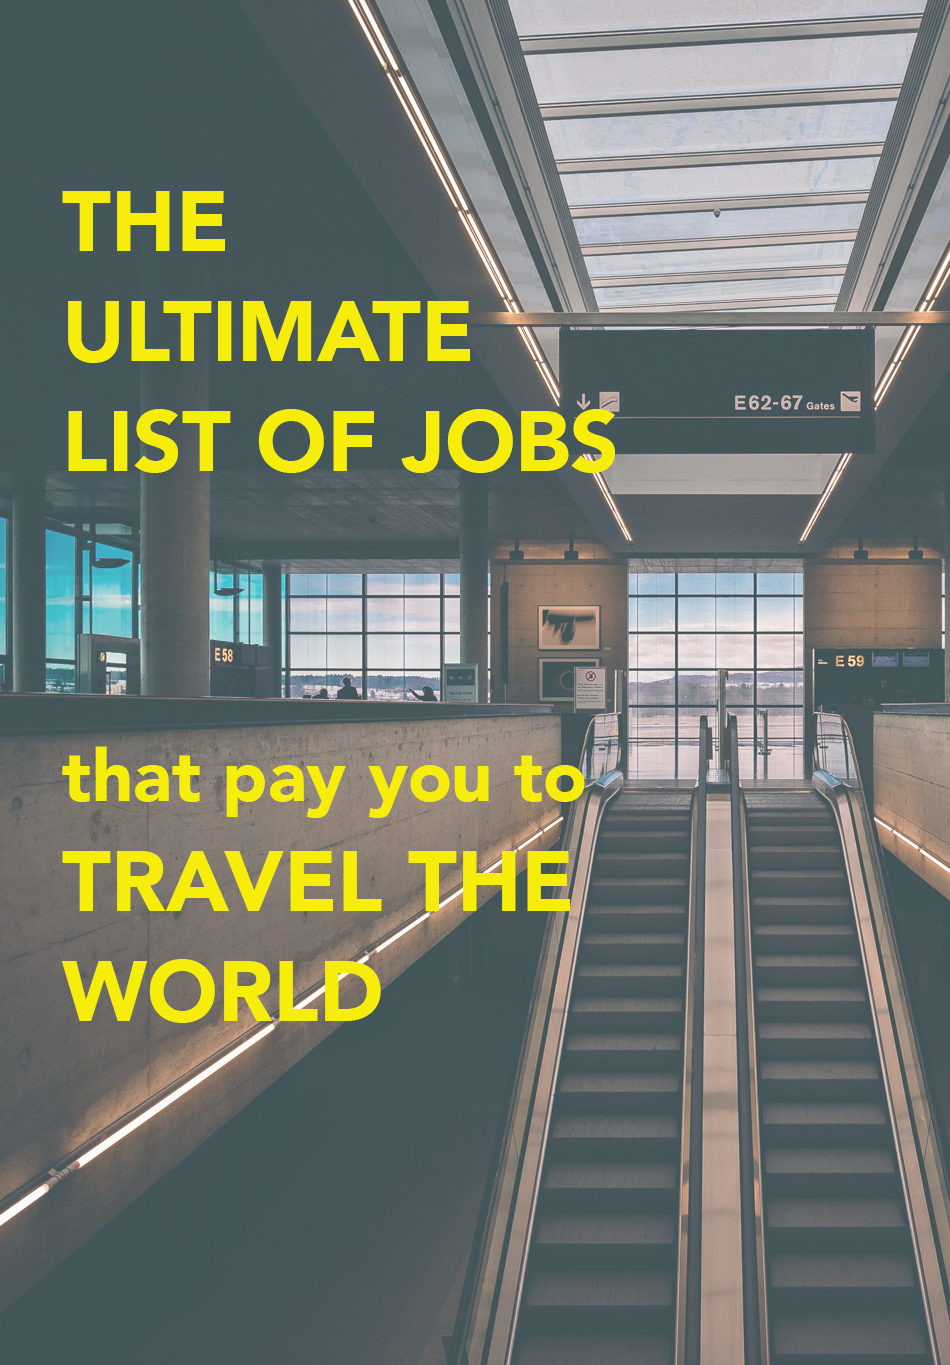 the ultimate list of jobs that pay you to travel a well around do what you love a travel job this post lists 33 jobs you can